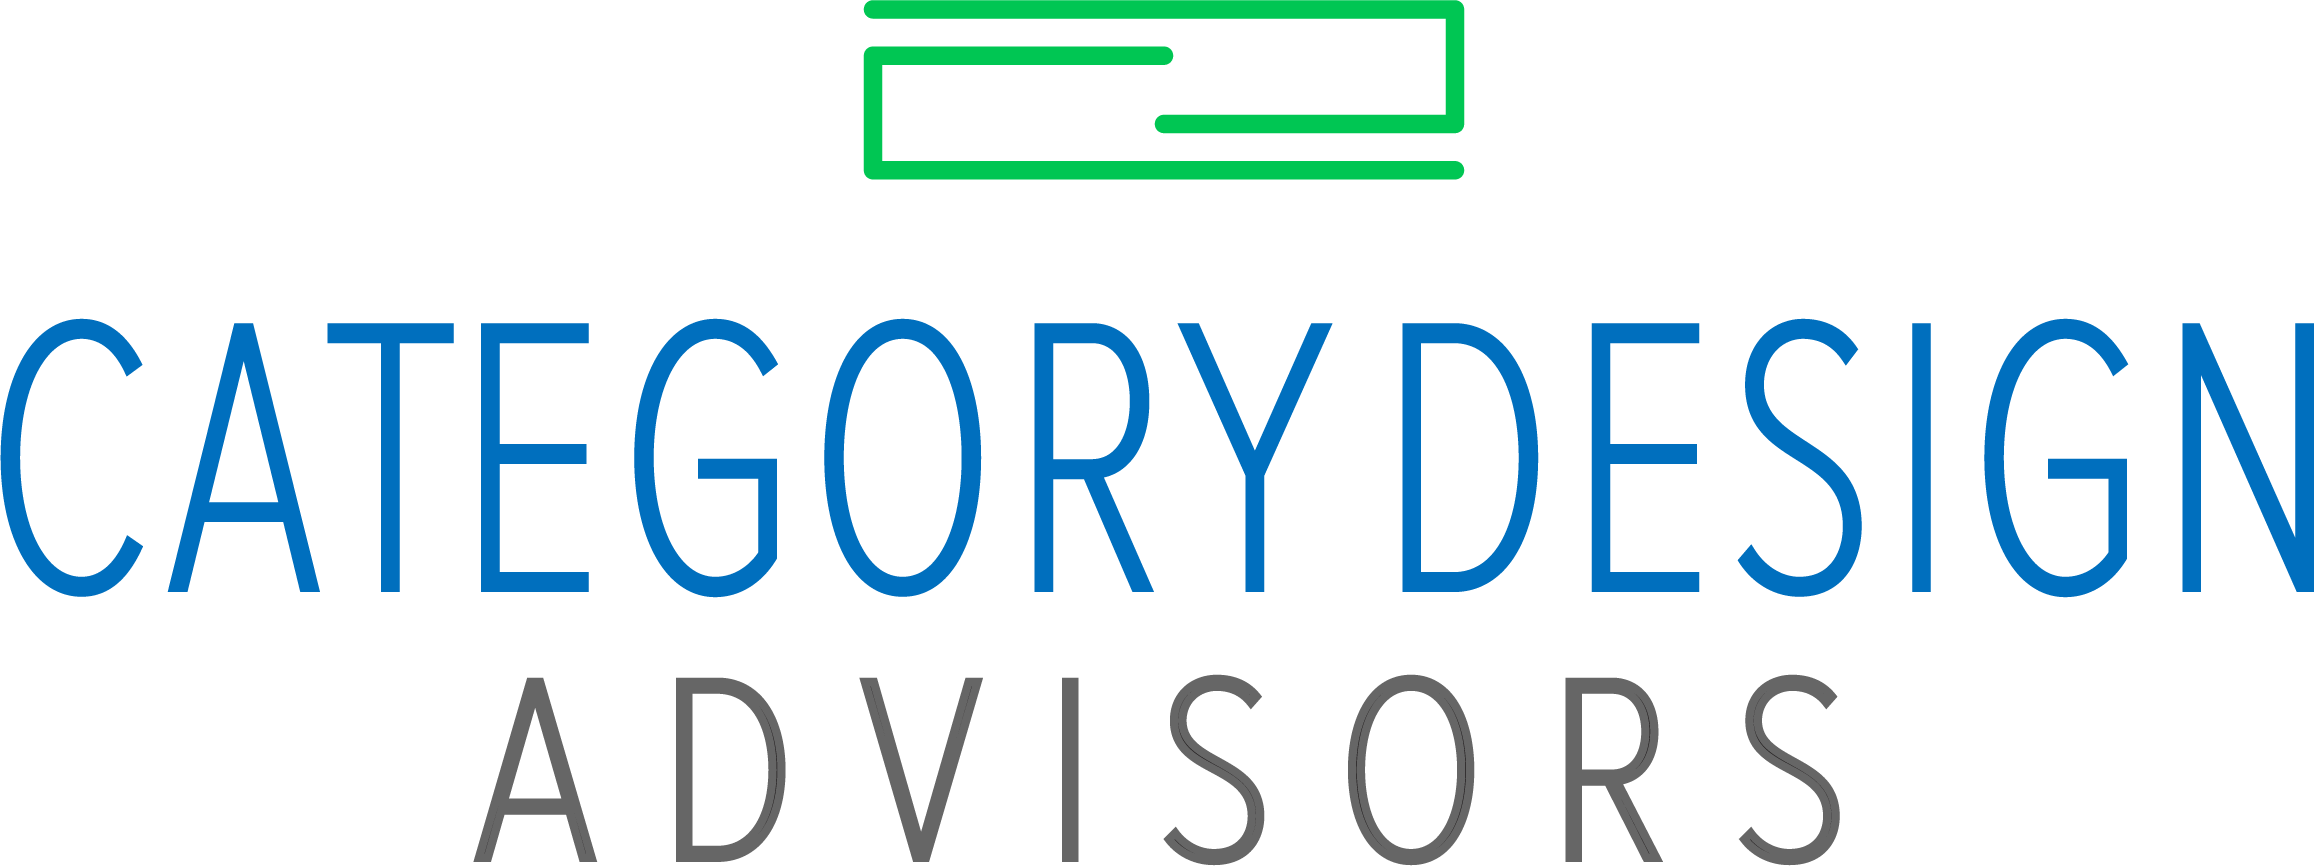 category design ADVISORS-3-color-RGB-Large new logo.png